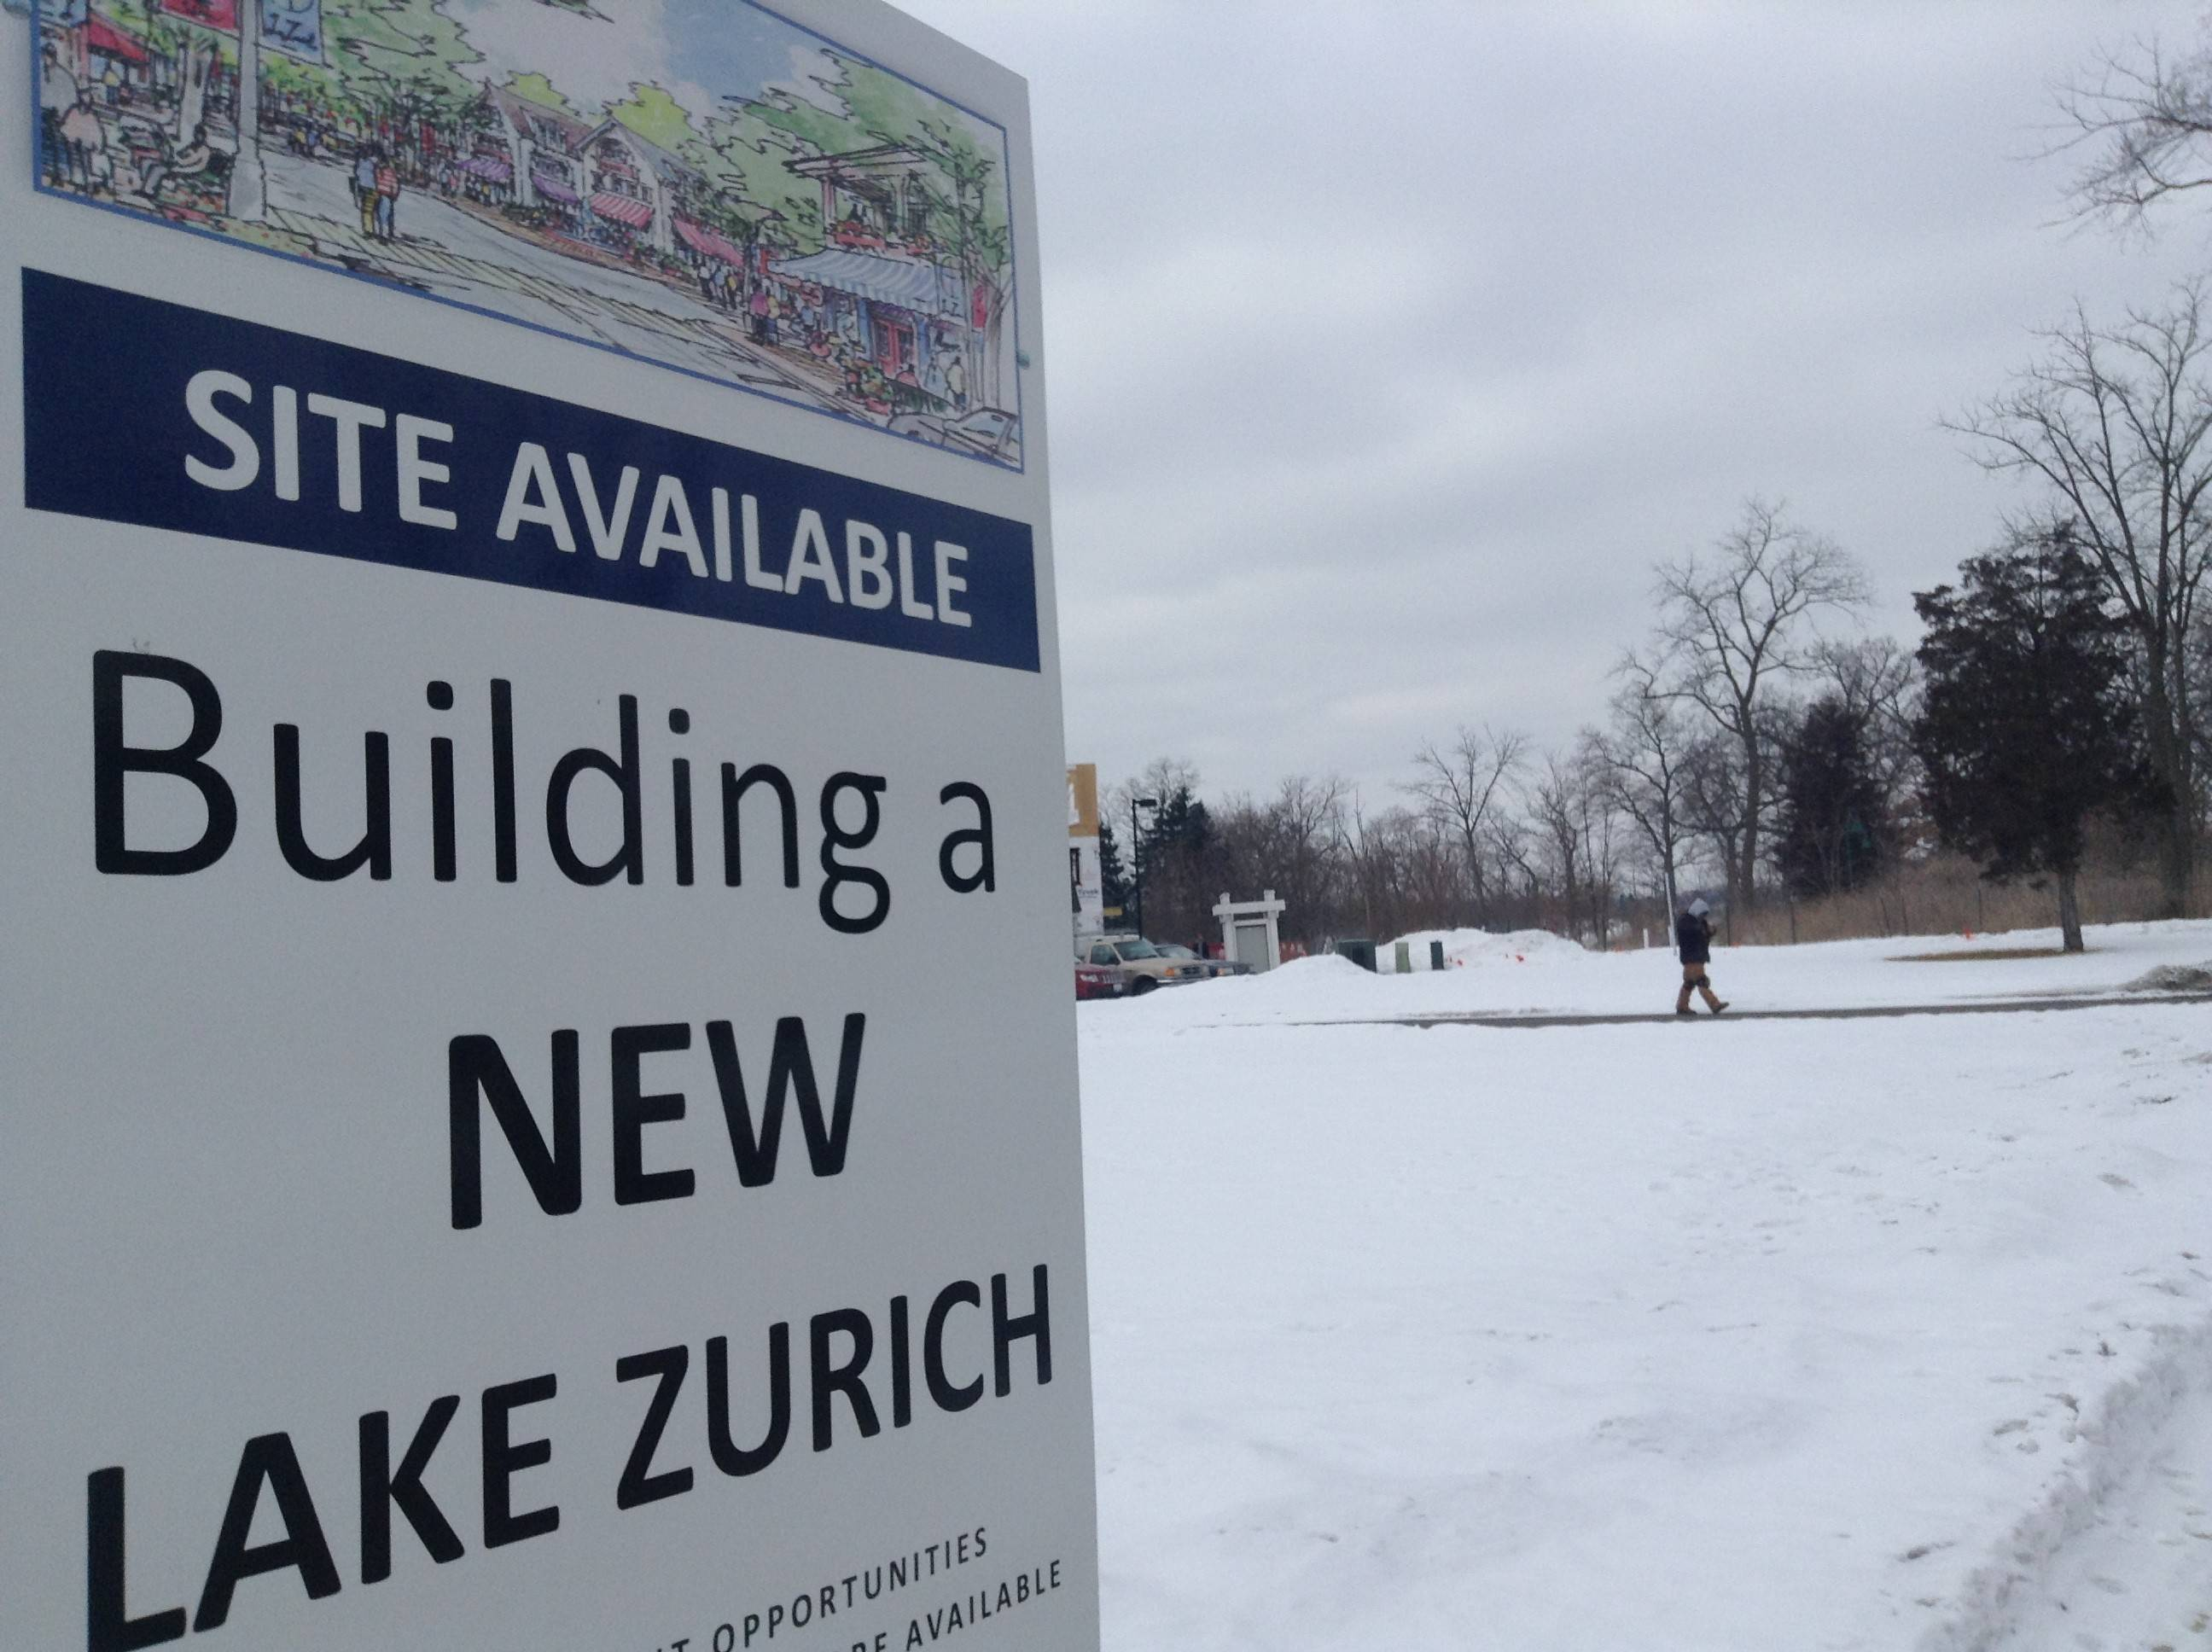 Lake Zurich grants downtown exclusivity to Toll Brothers